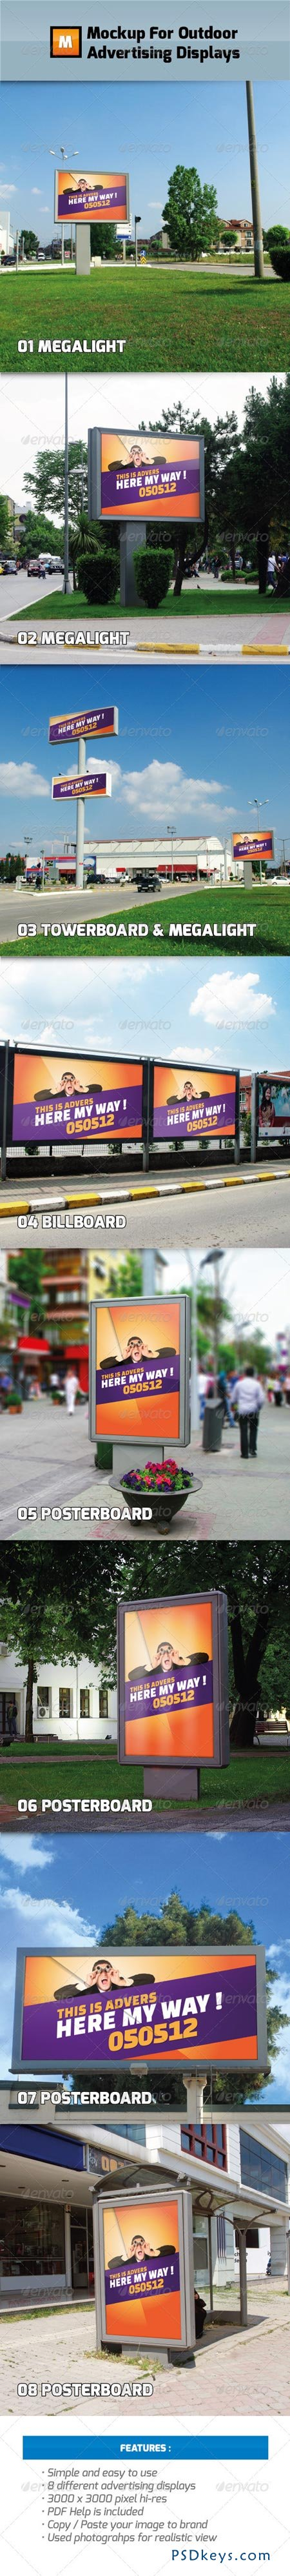 Mockup For Outdoor Advertising Displays 2458879